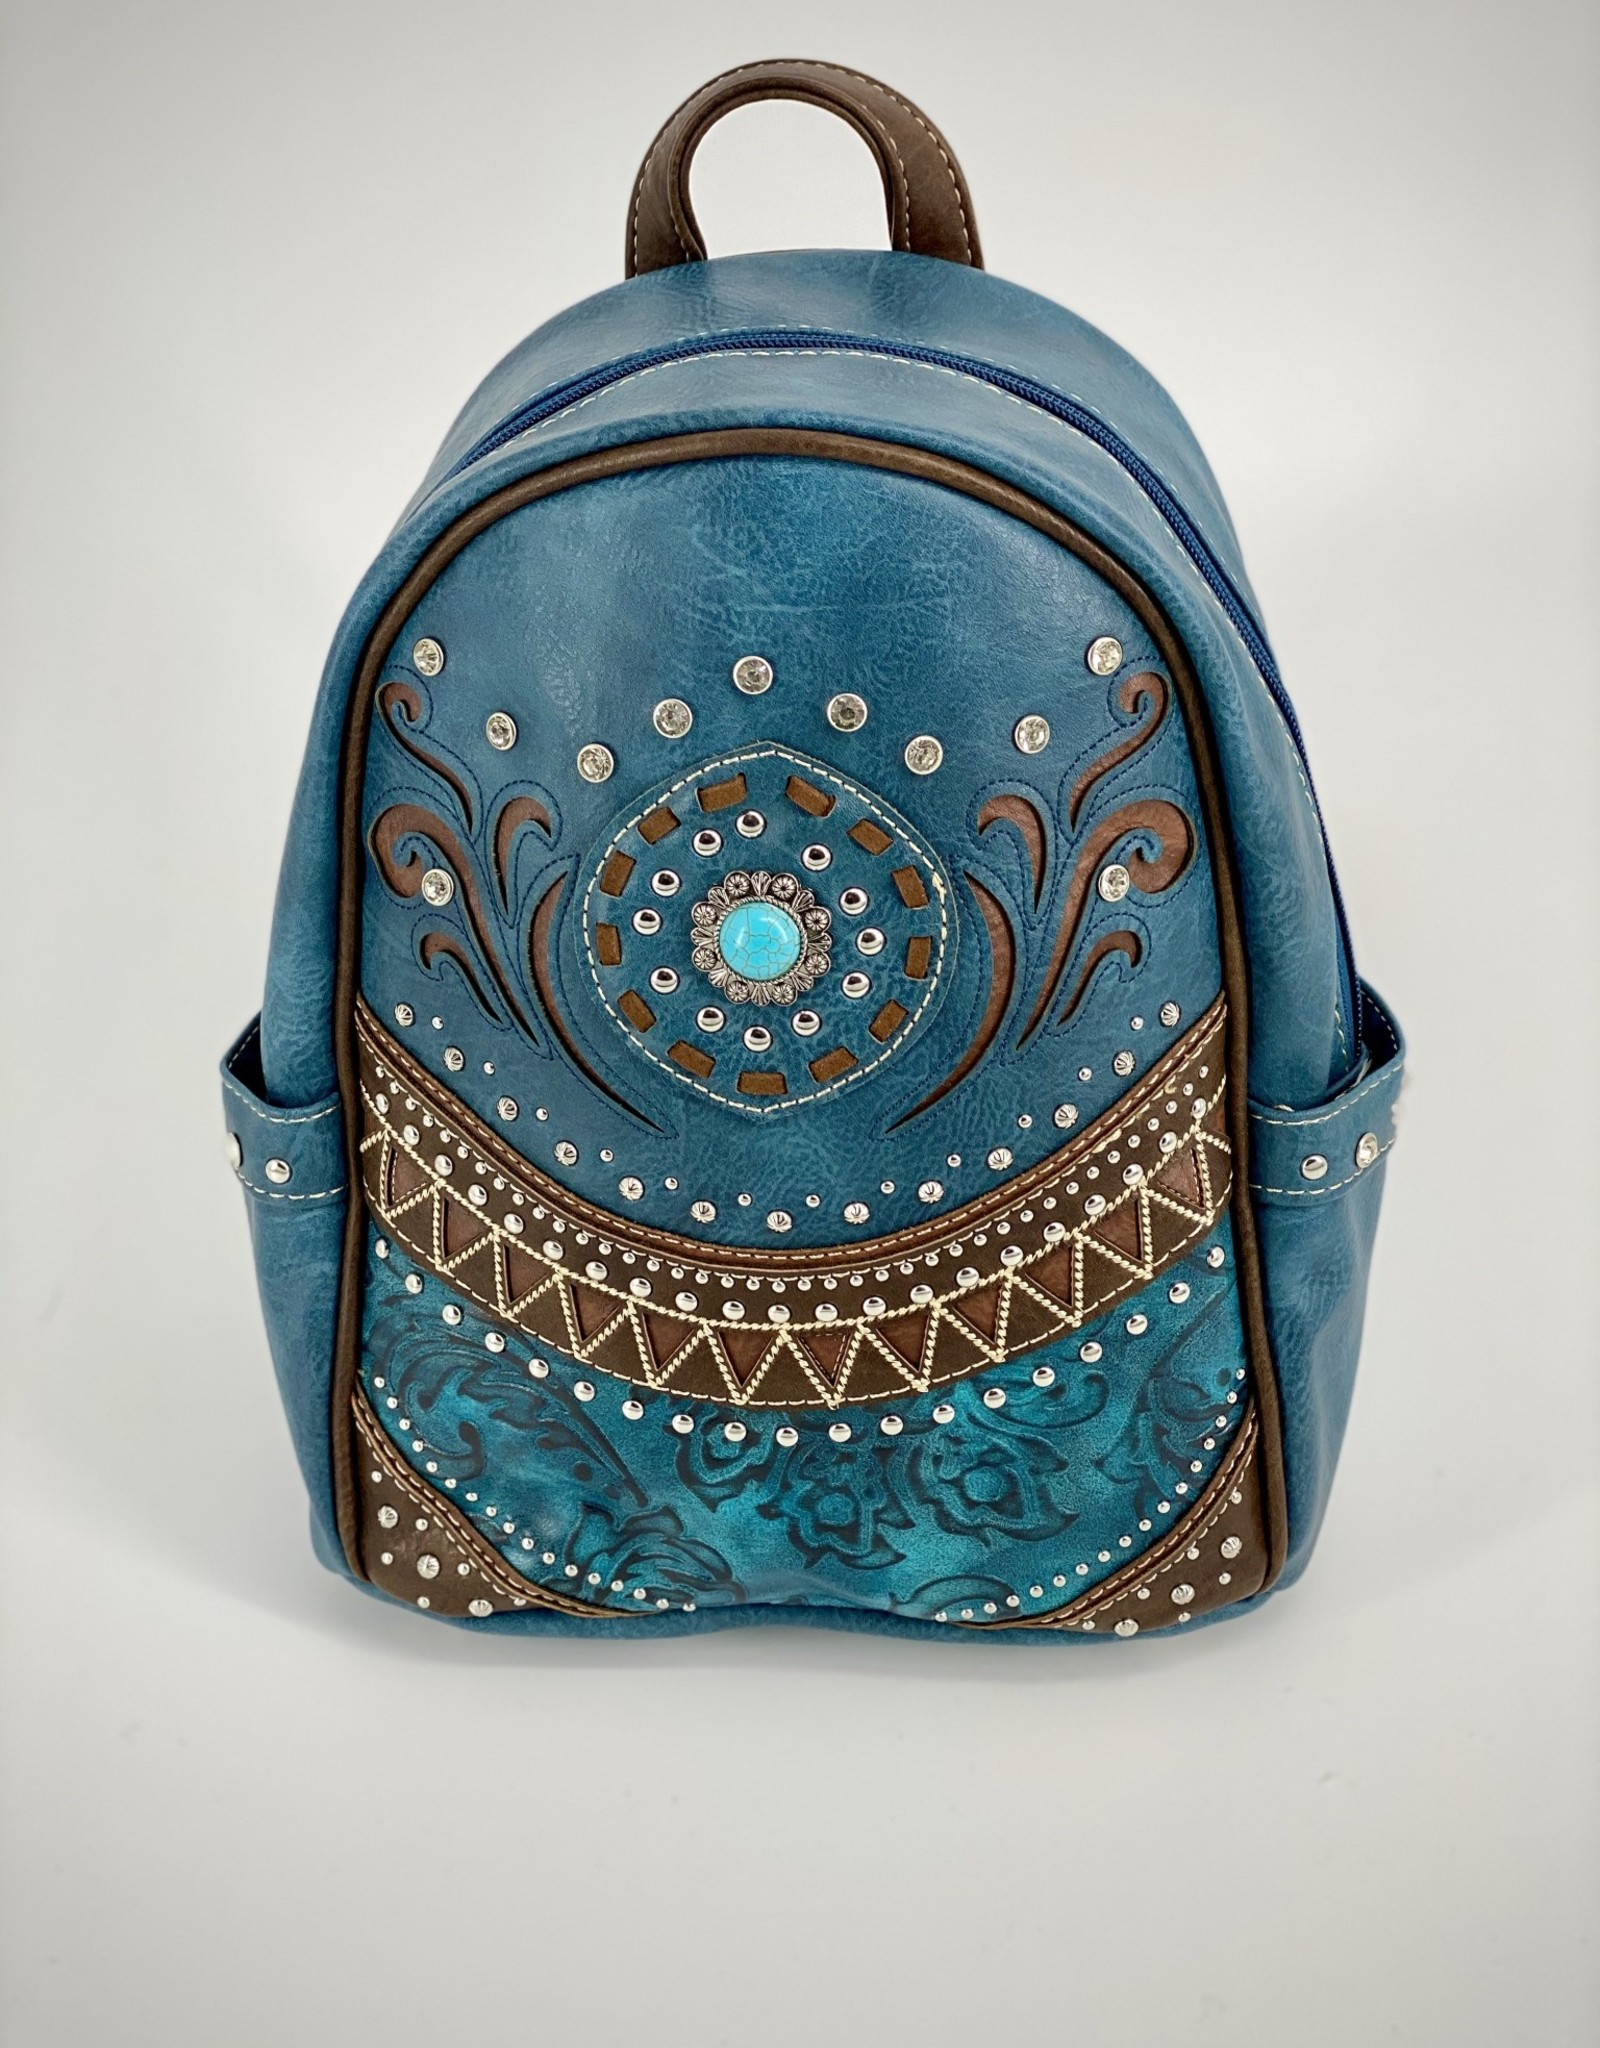 BACKPACK WESTERN STYLE TURQ ACCENT